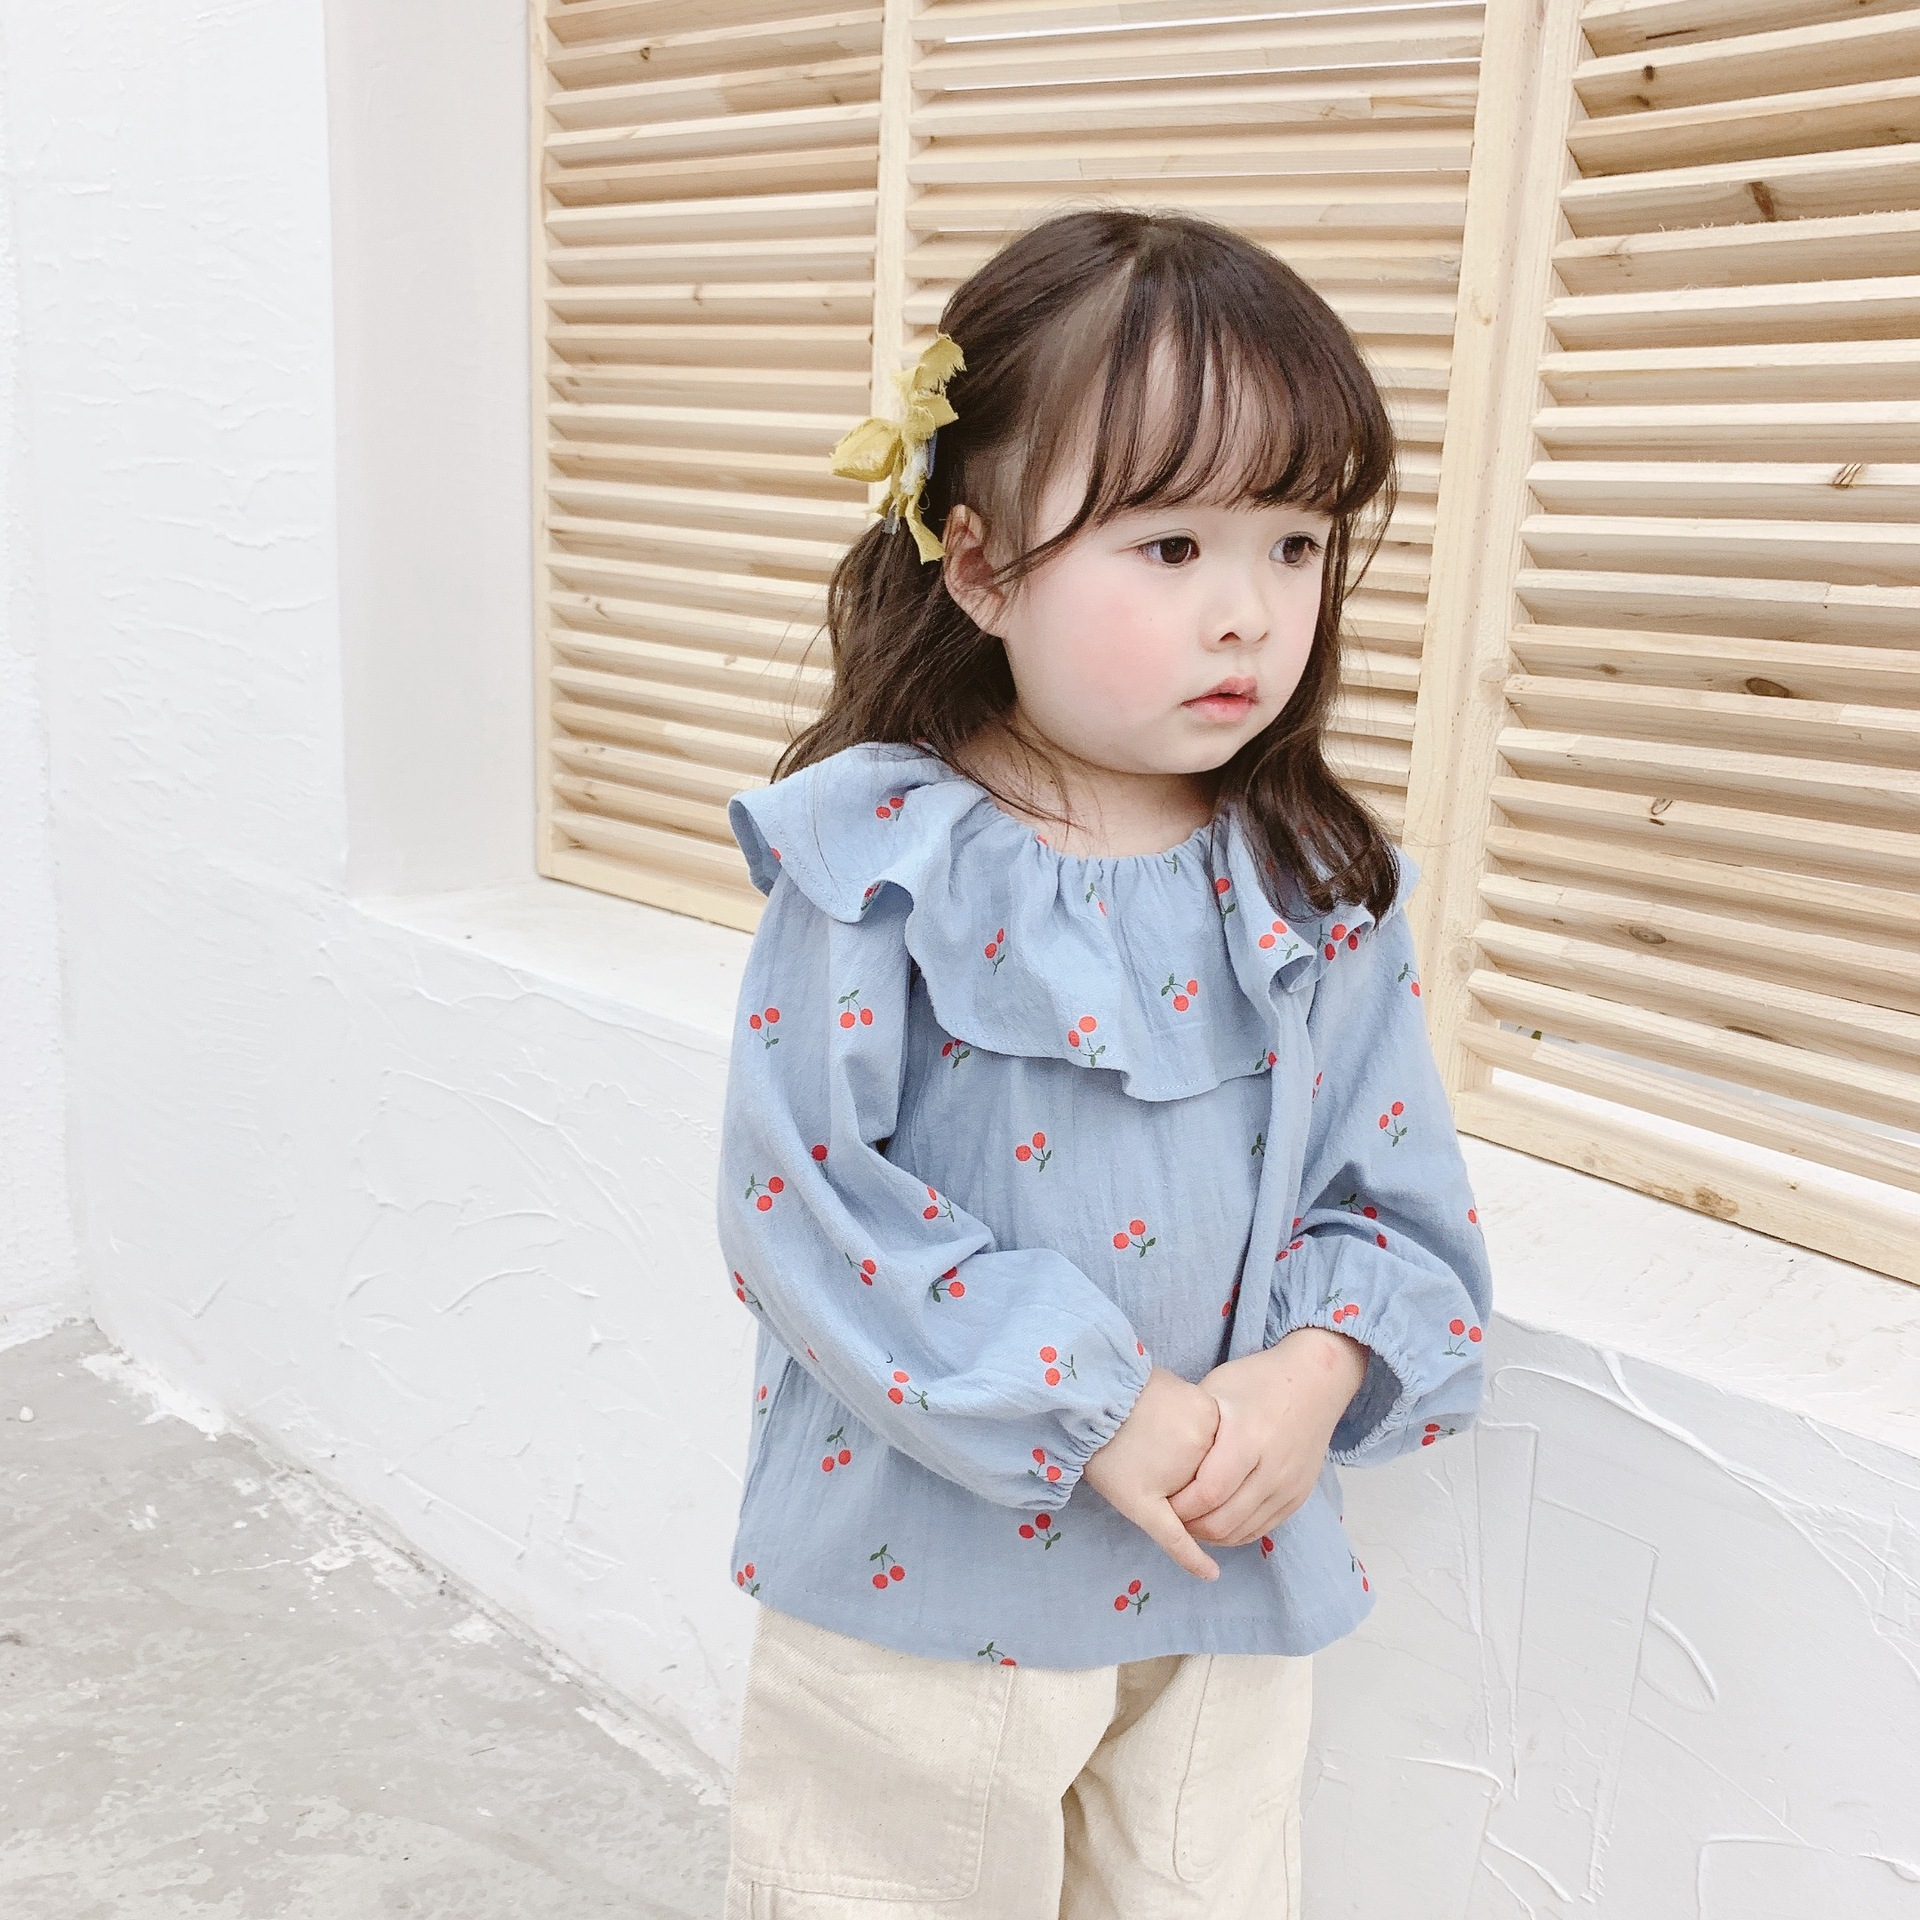 2019 Autumn Childrenswear New Style Girls Korean-style Cherry Printed Large Lapel Shirt 19024